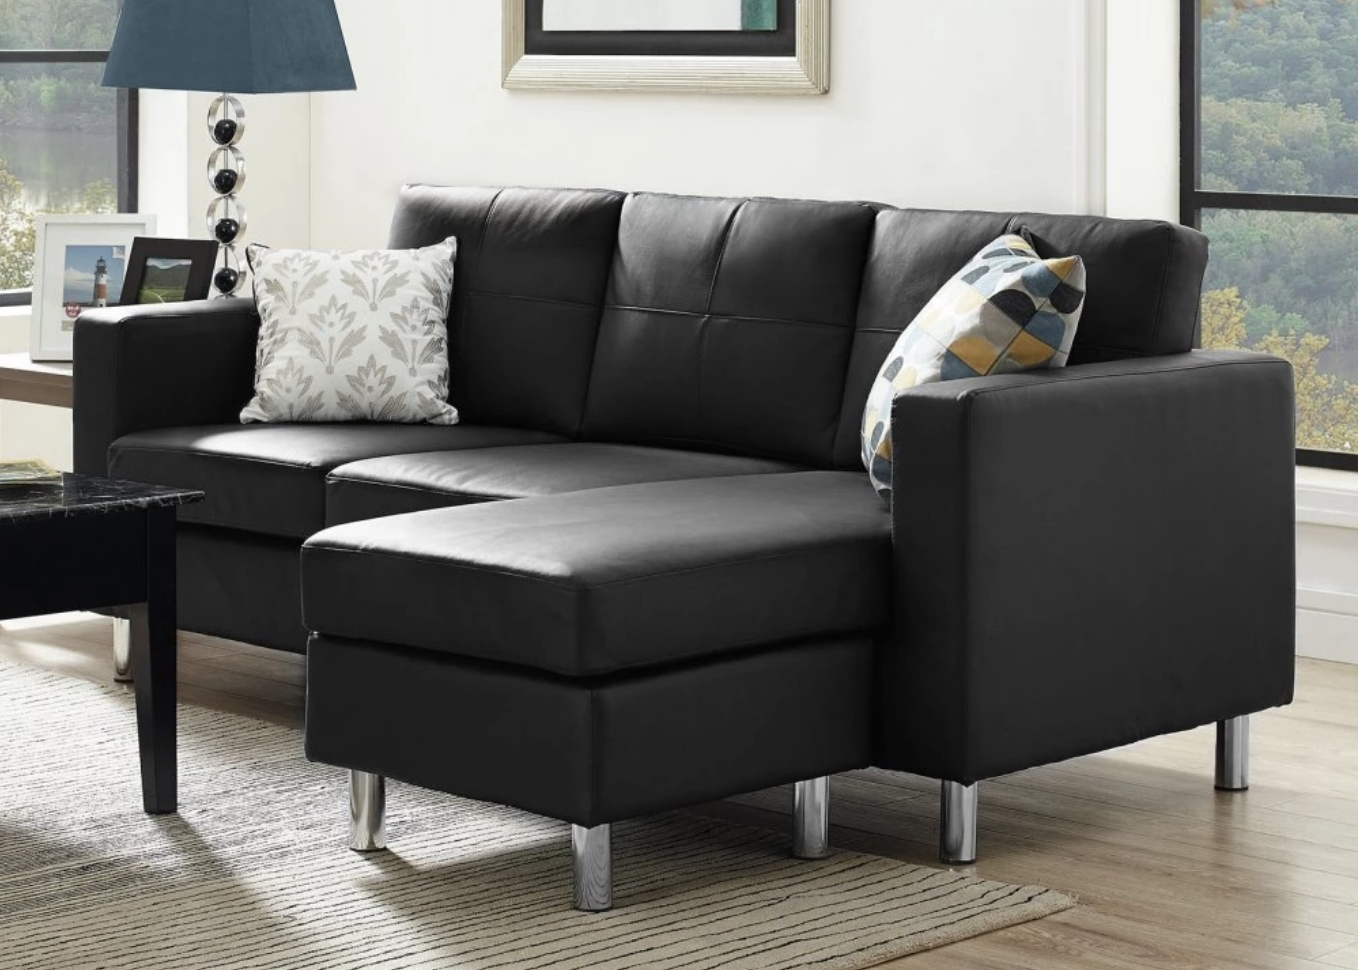 80X80 Sectional Sofas Intended For Well Known 75 Modern Sectional Sofas For Small Spaces (2018) (View 6 of 20)